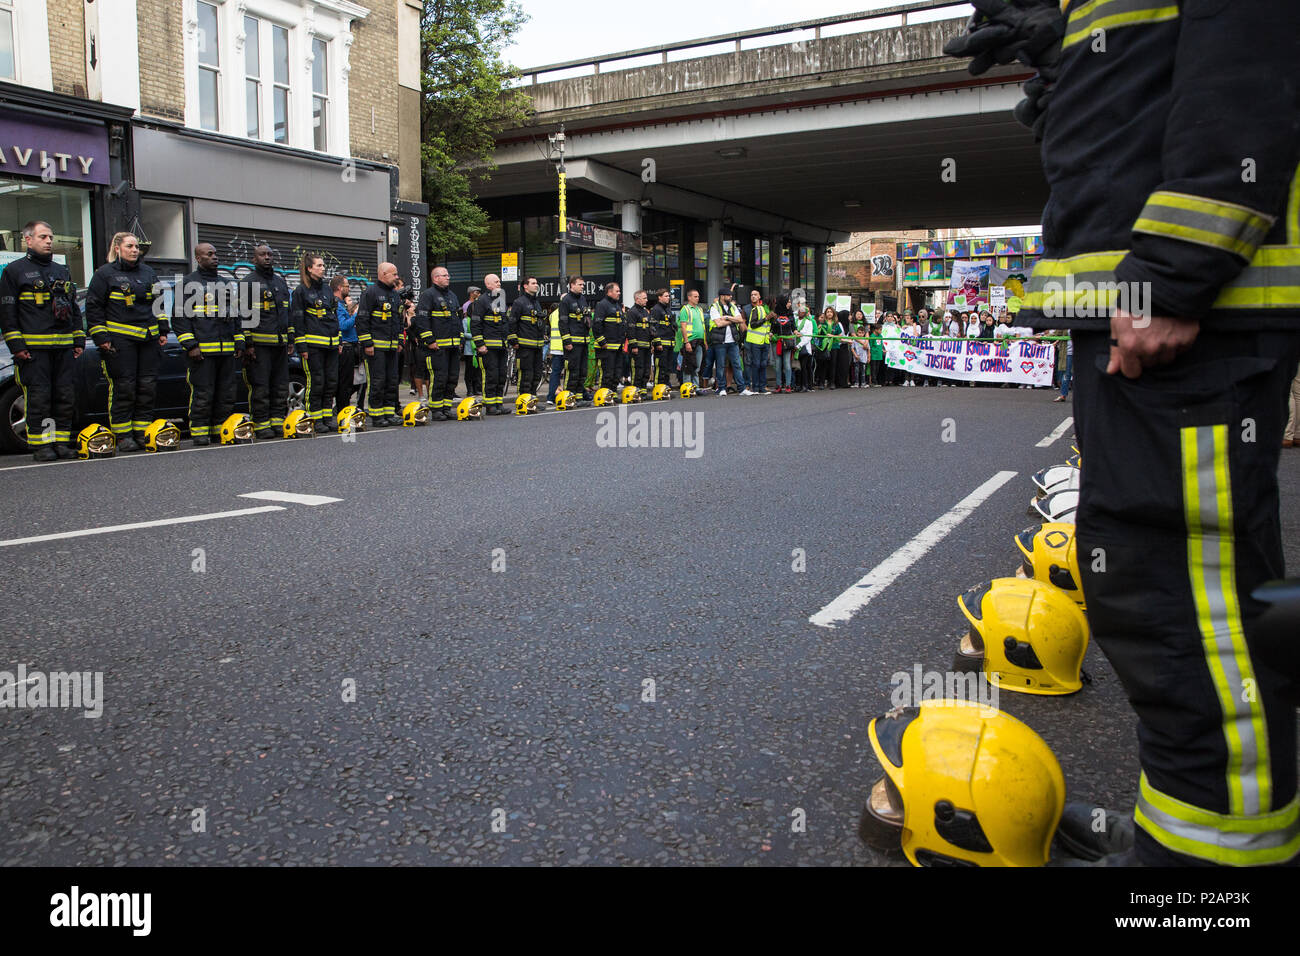 London, UK. 14th June, 2018. A guard of honour prepared by the London Fire Brigade for the Grenfell Silent March through West Kensington on the first anniversary of the Grenfell Tower fire. 72 people died in the Grenfell Tower fire and over 70 were injured. Credit: Mark Kerrison/Alamy Live News - Stock Image